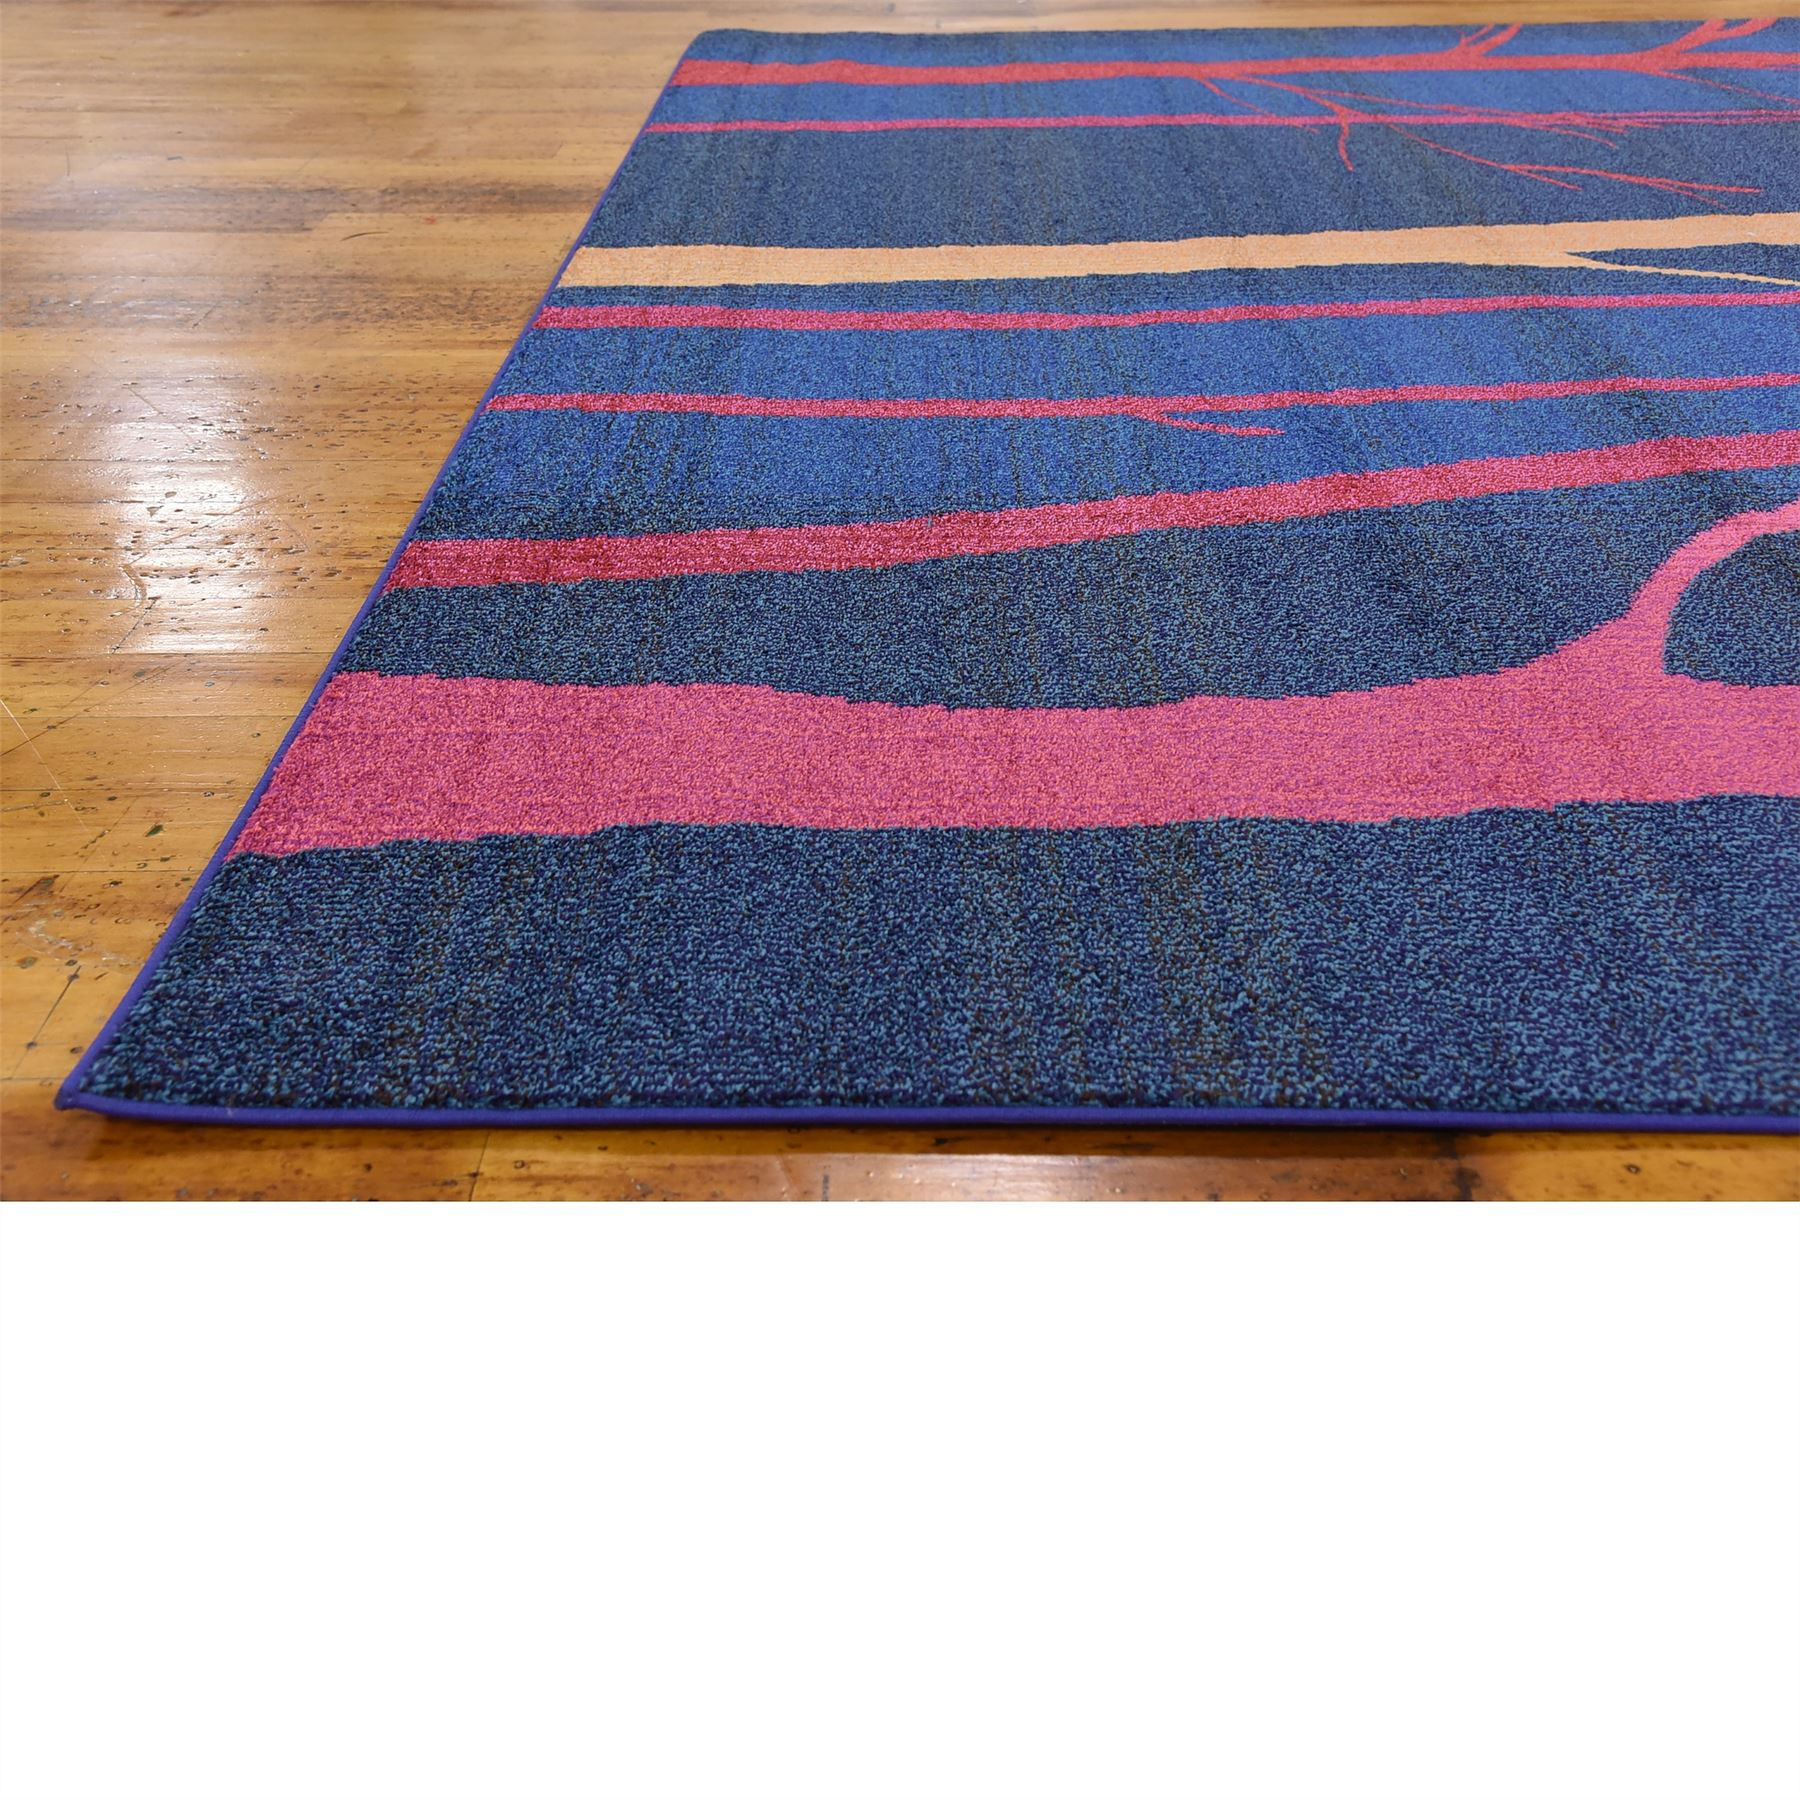 Modern Looking Rug: Modern Blue Pictorial Design Area Rug Contemporary Style